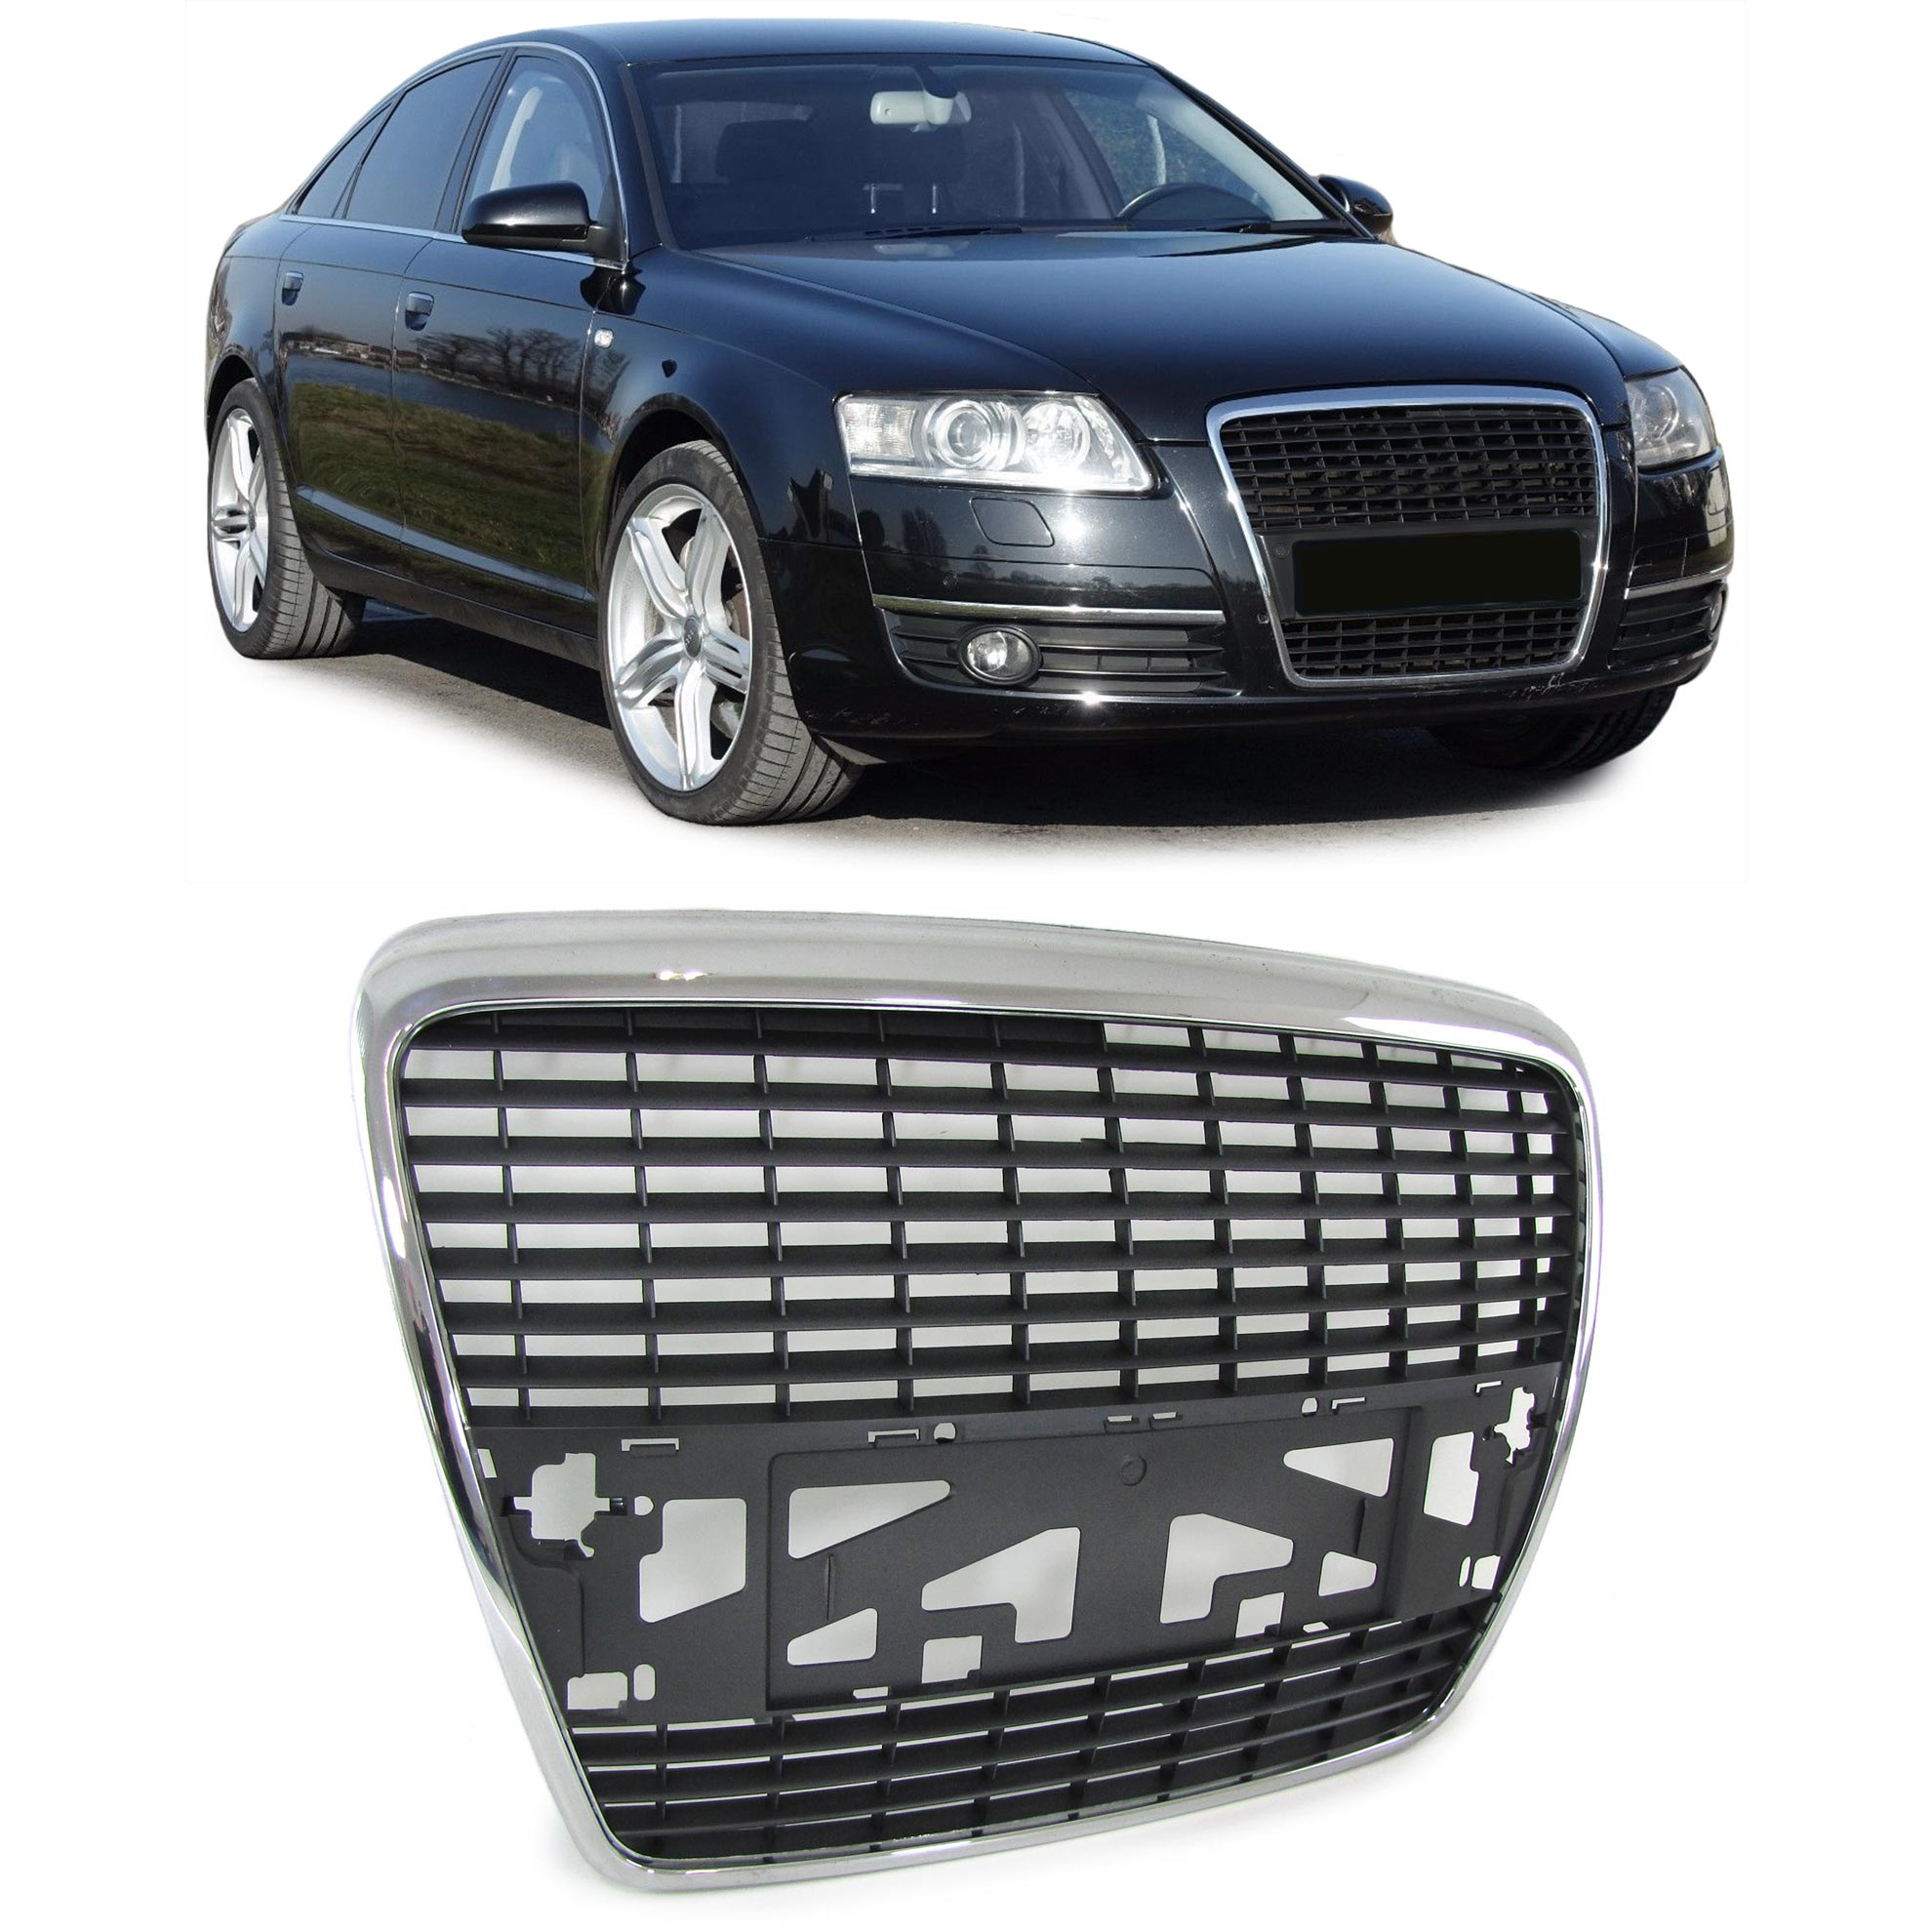 audi a6 c6 4f limo avant 04 11 front grill without emblem. Black Bedroom Furniture Sets. Home Design Ideas